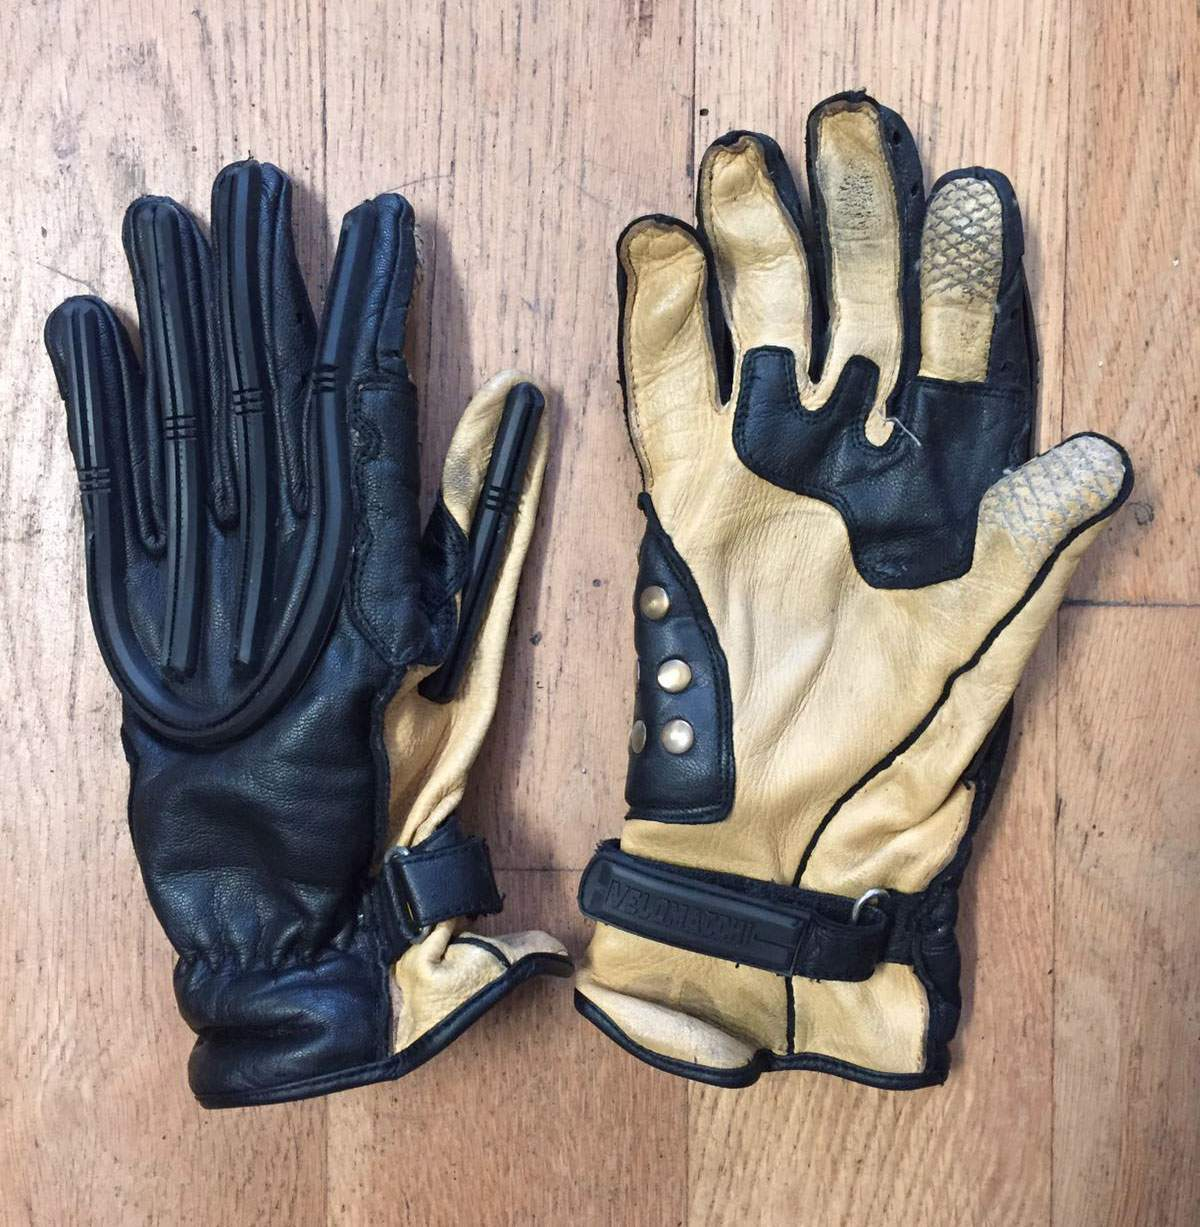 Velomacchi Speedway Gloves Review 1